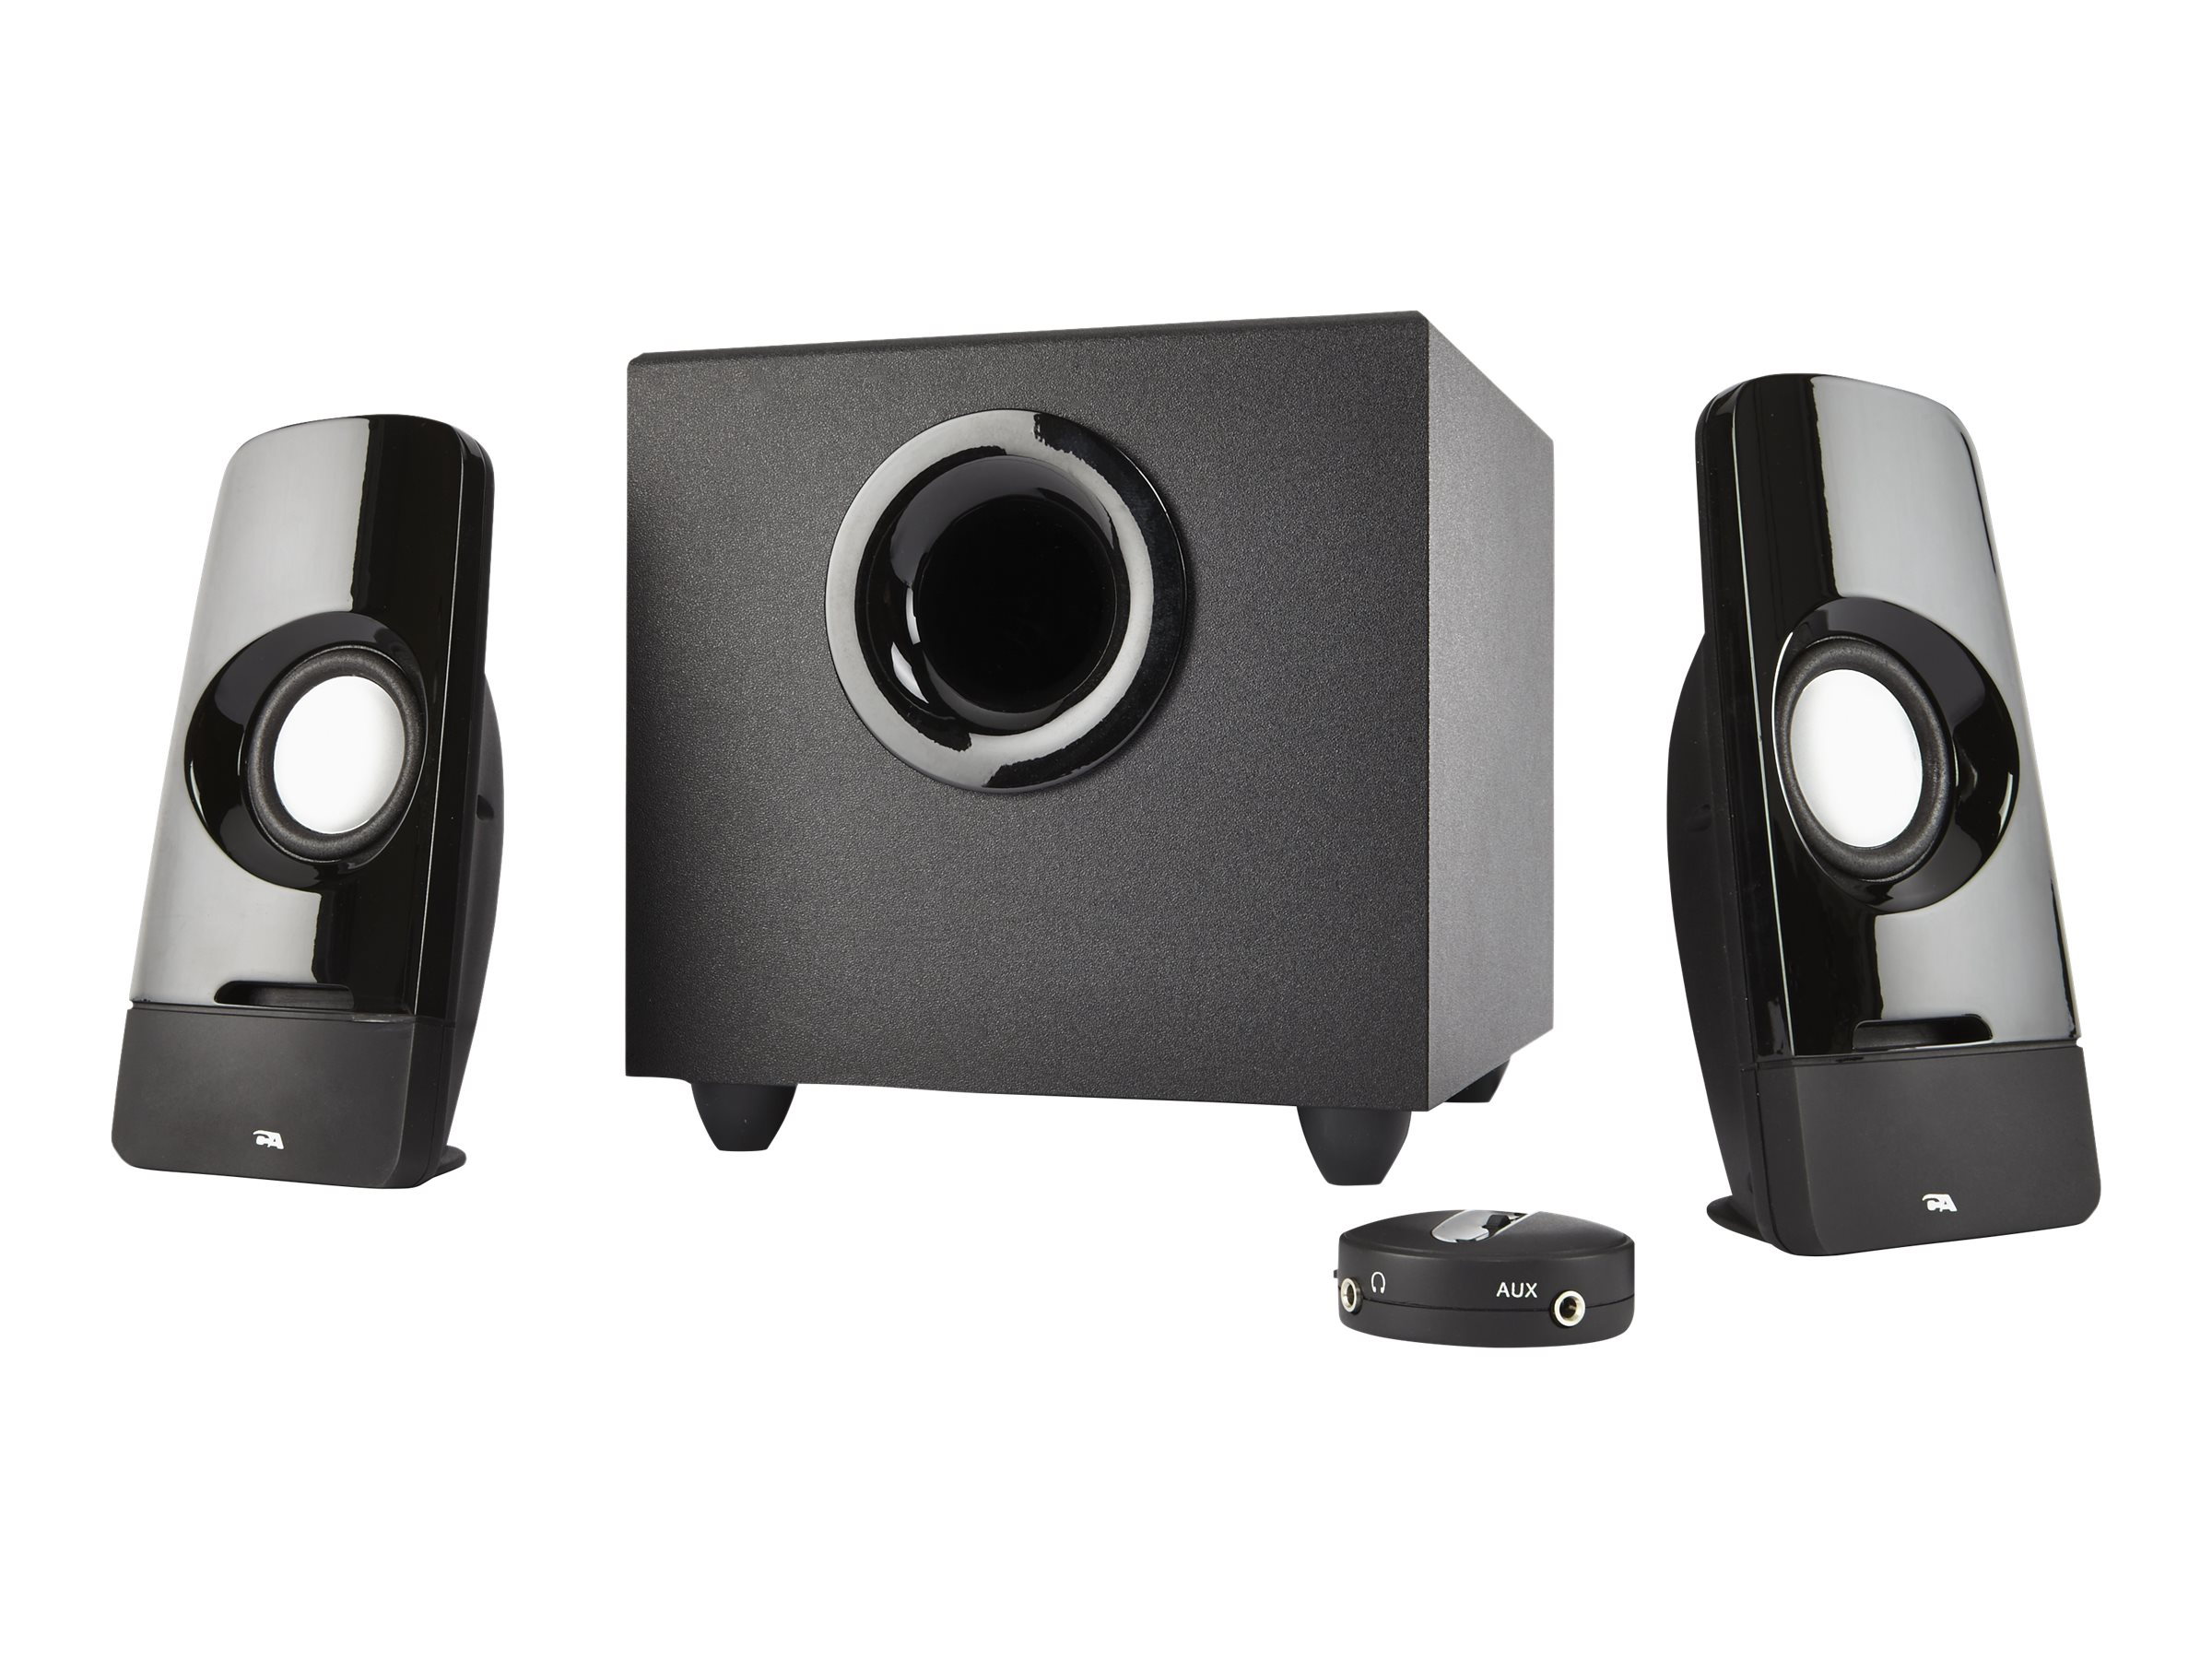 Cyber Acoustics Curve Series Control Pod Subwoofer 2.1 Powered Speaker System, CA-3050